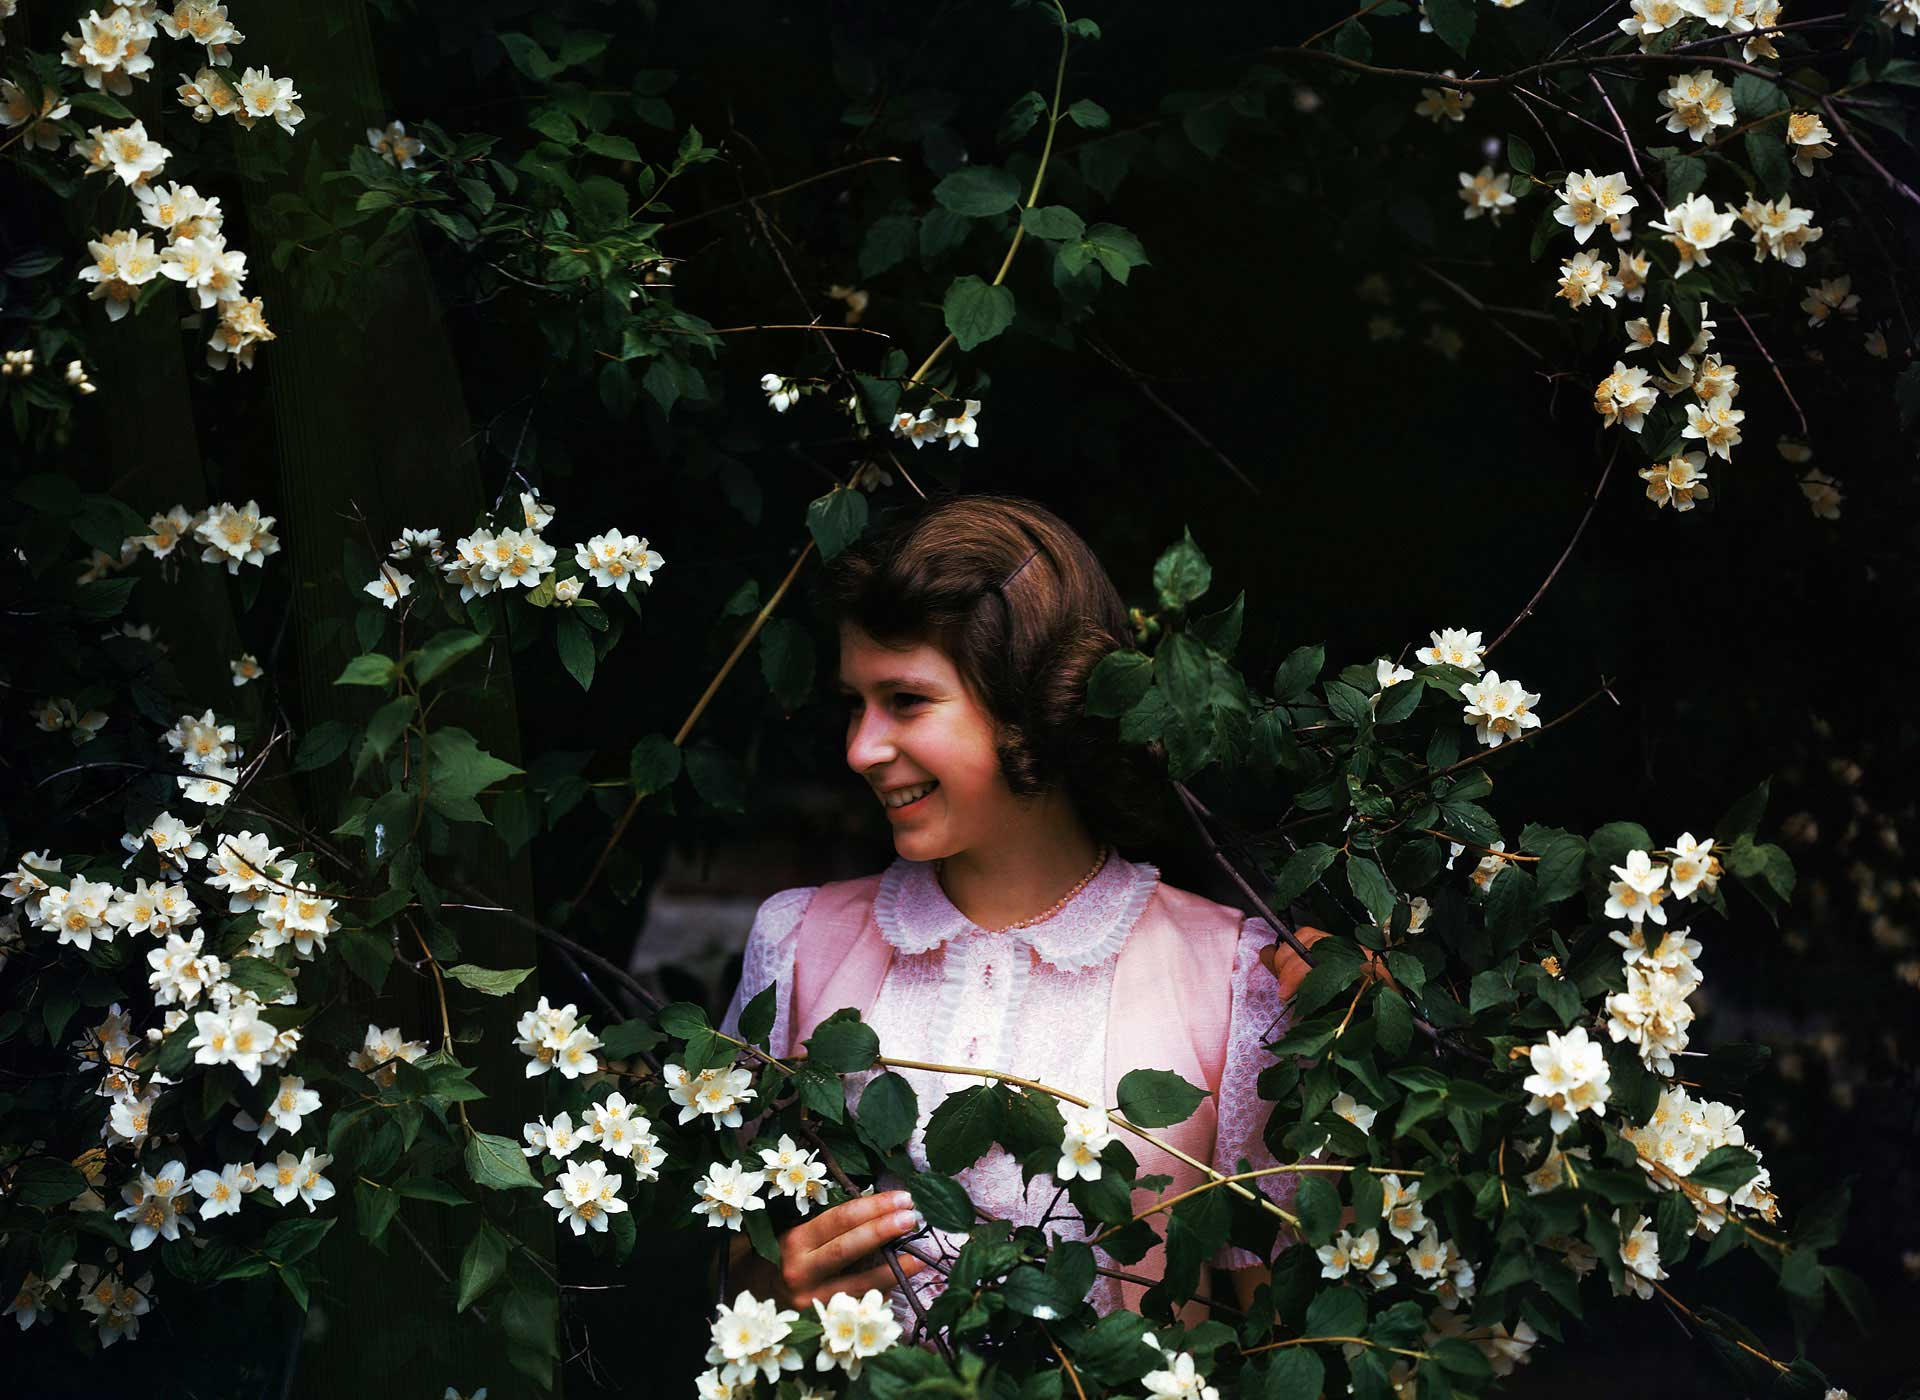 Princess Elizabeth, age 15, poses amid Syringa flowers at Windsor in the summer of 1941. Even at a young age, friends and relatives uniformly say, the royal was responsible and sensible.